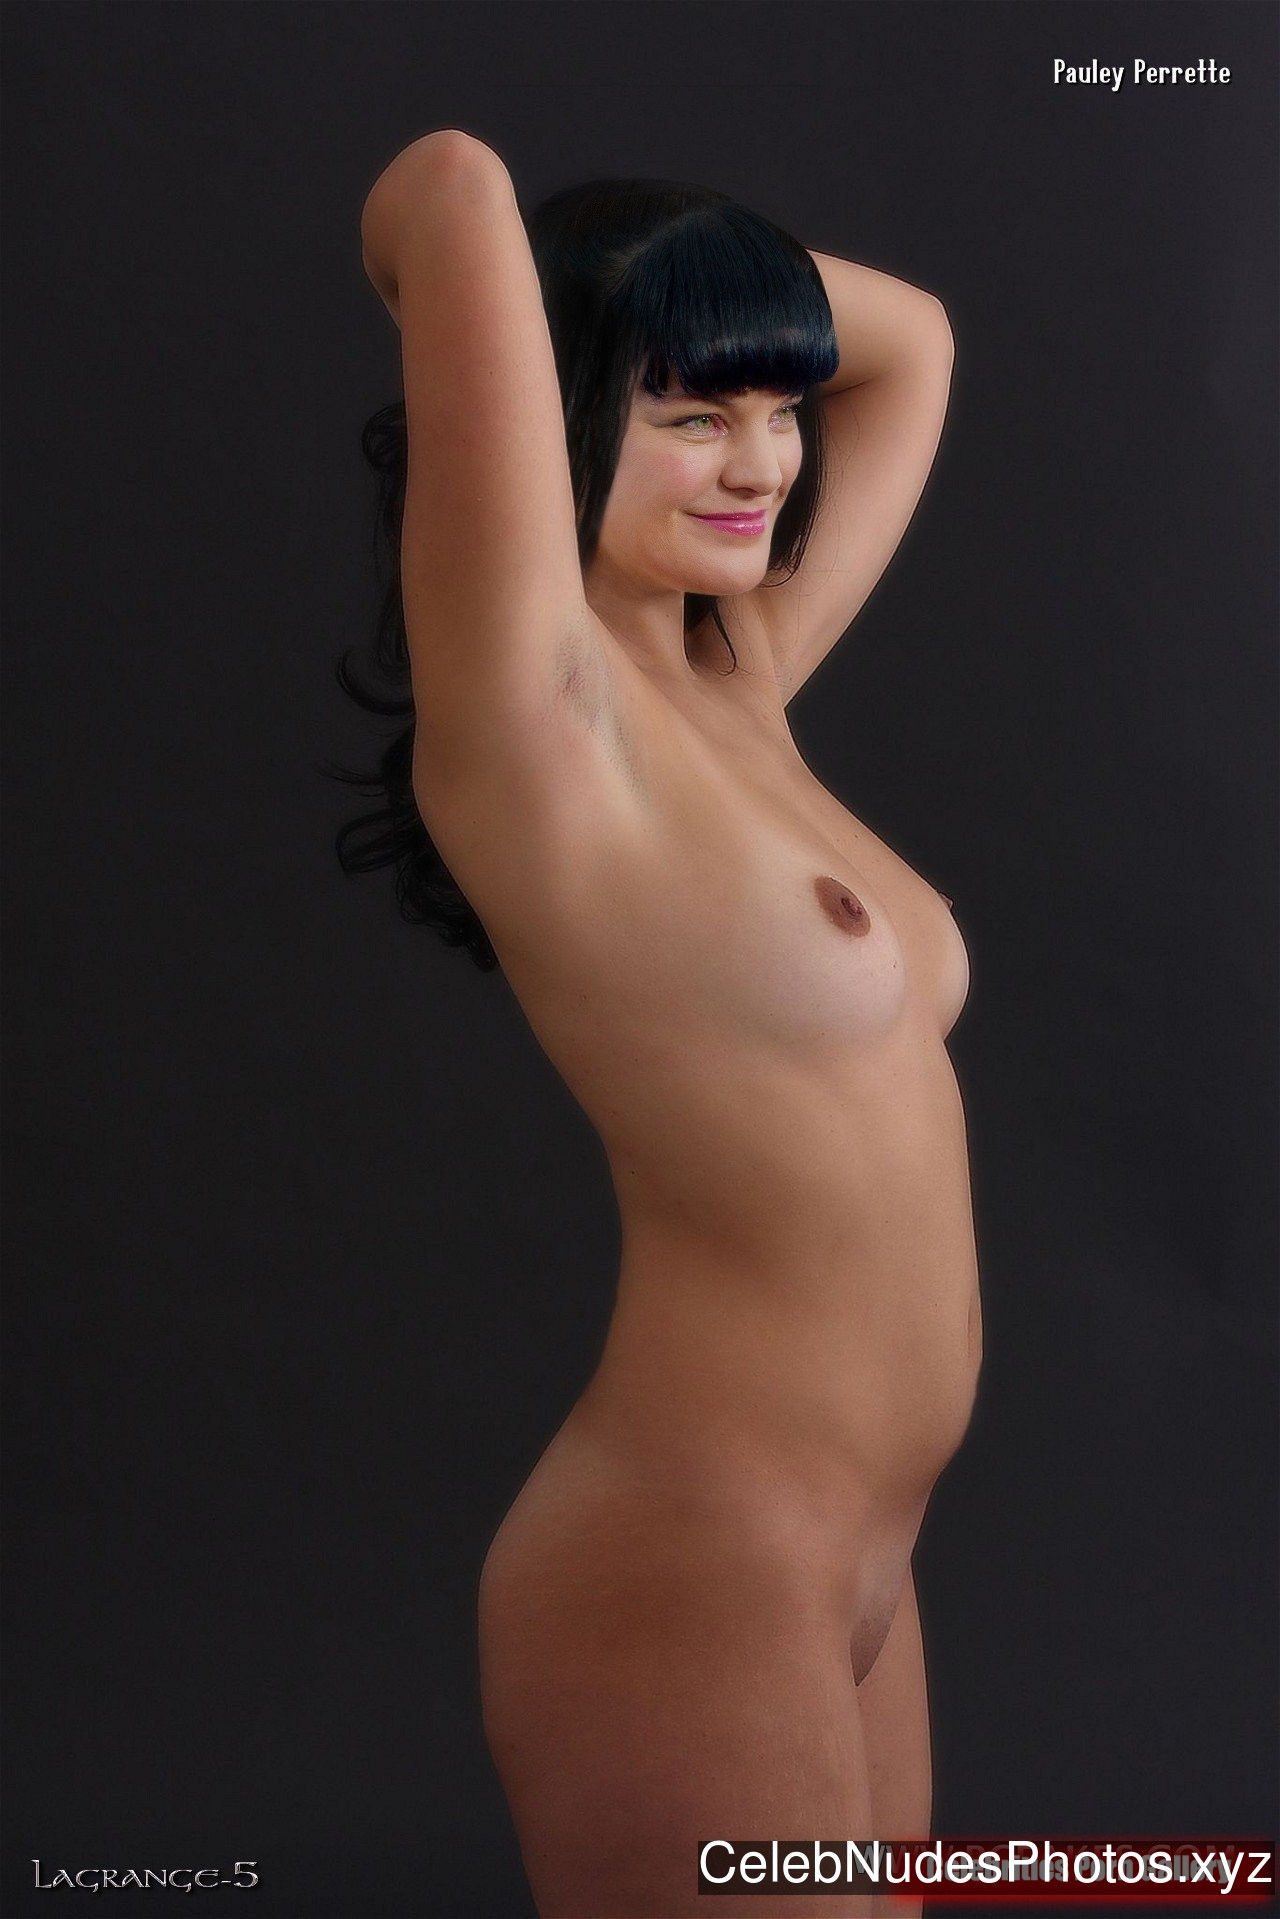 Valuable Pauley perrette nude boobs whom can